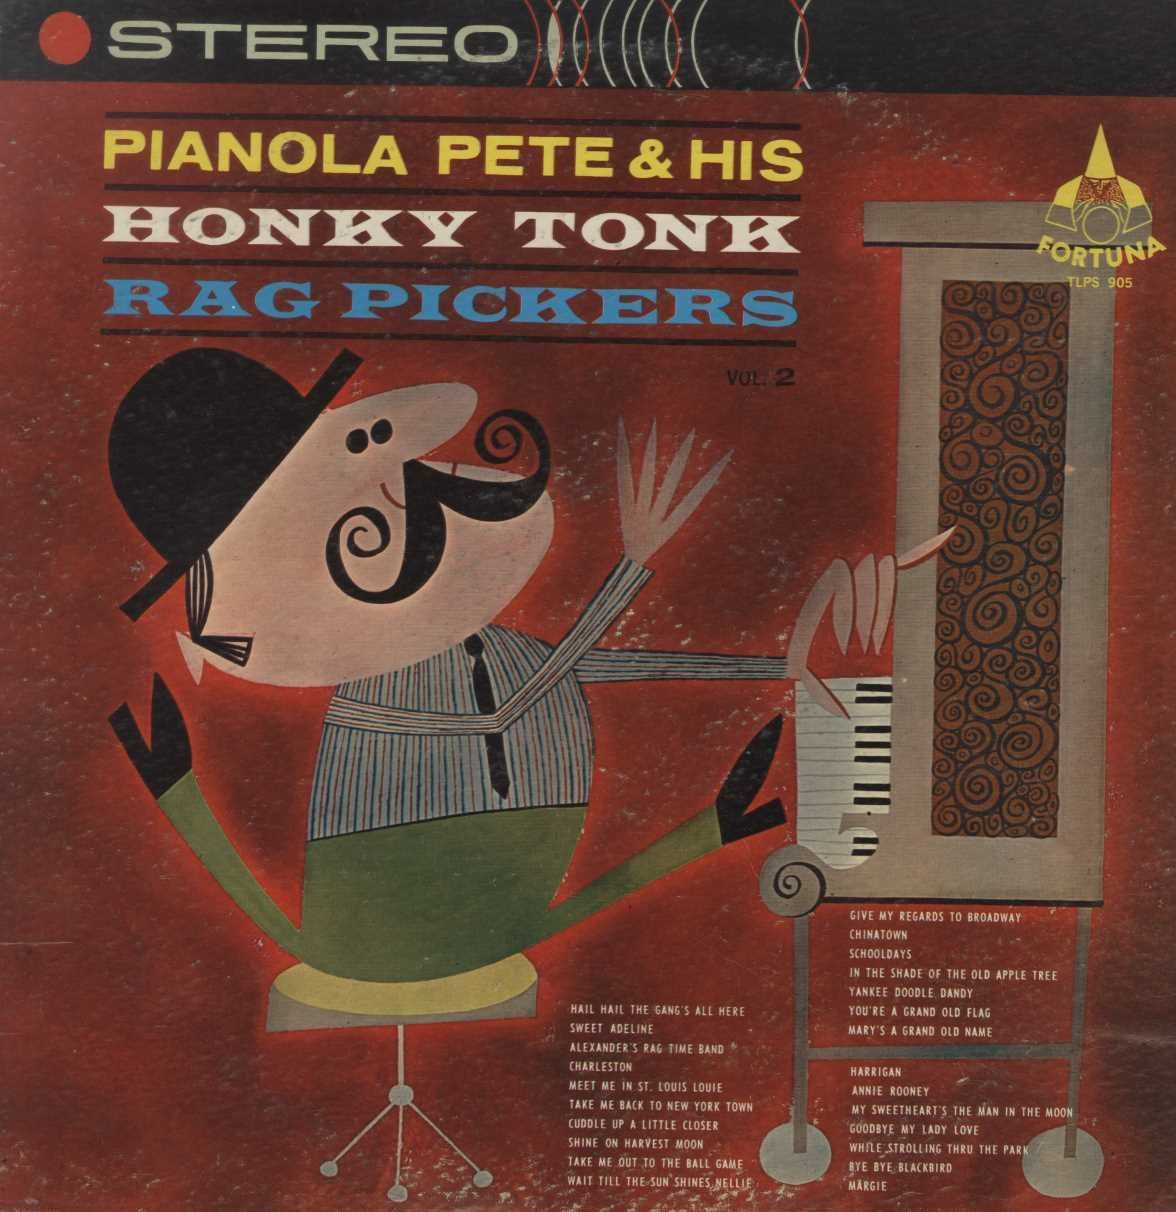 Pianola Pete & His Honky Tonk - Honky Tonk Rag Pickers